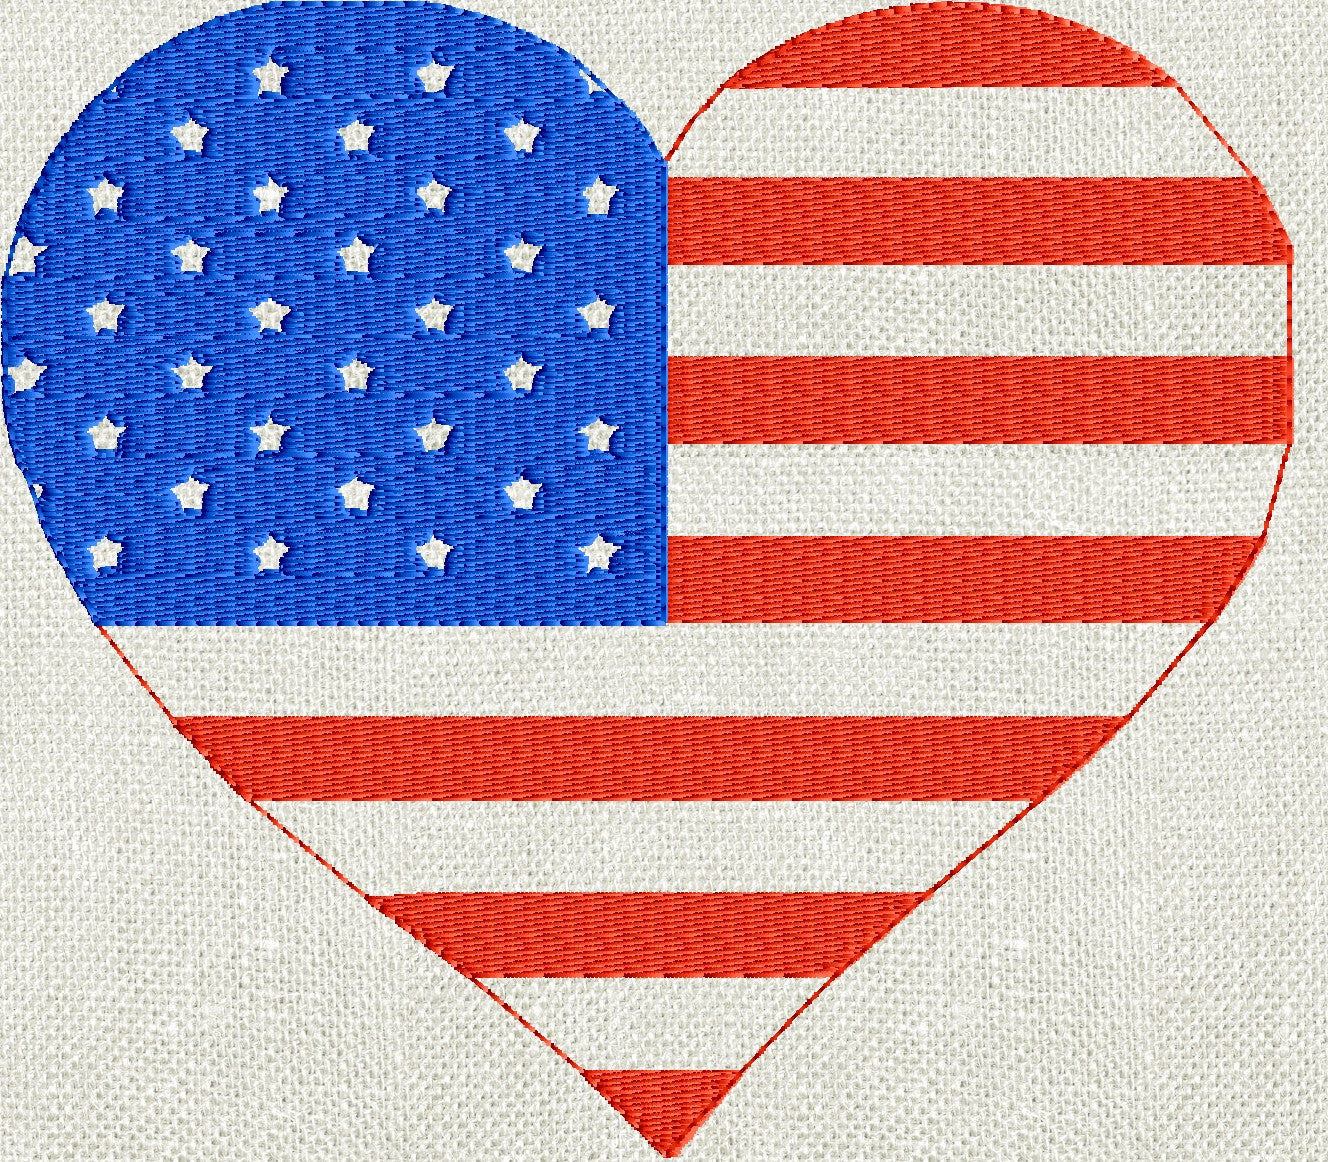 Heart American Flag Patriotic - Memorial Day - 4th of July Welcome home - Embroidery DESIGN FILE